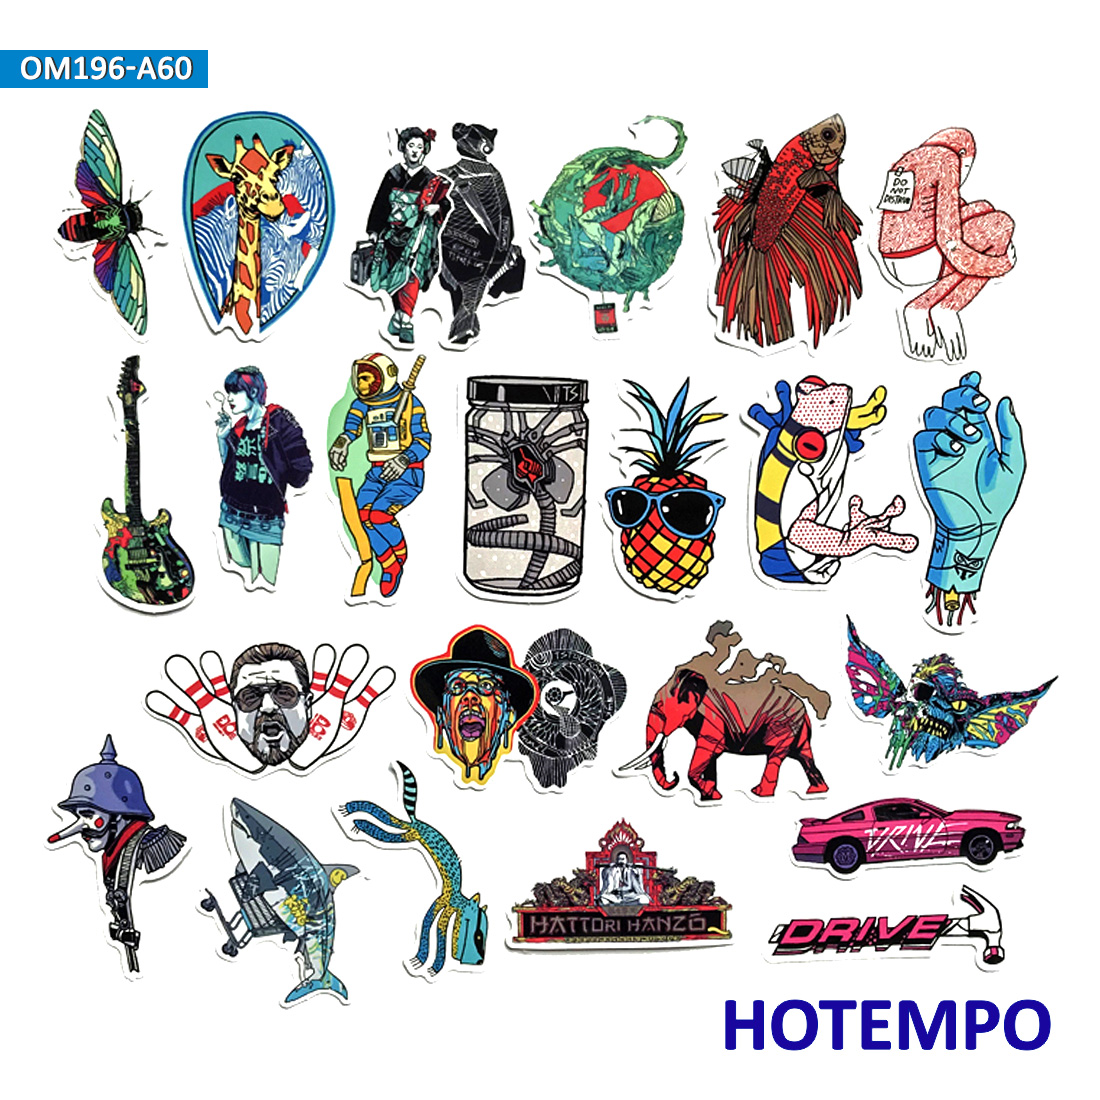 60pcs Mix Graffiti Stickers for DIY Mobile Phone Laptop Luggage Guitar Case Snowboard Bicycle Car PVC Waterproof Decal Stickers in Stickers from Toys Hobbies